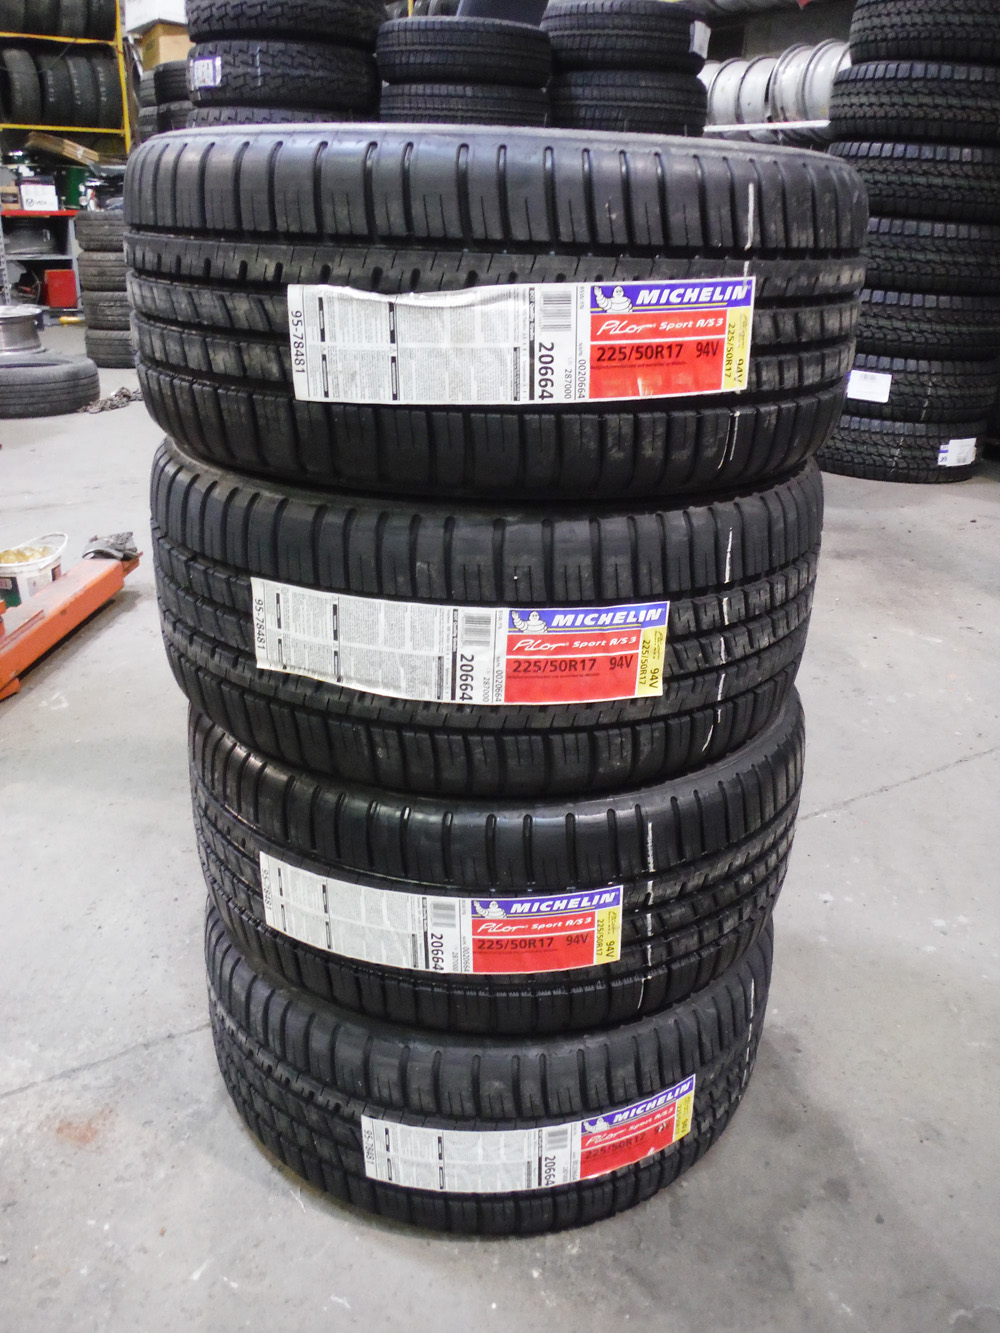 Michelin Pilot Sport AS3 225/50R17 Tires for sale